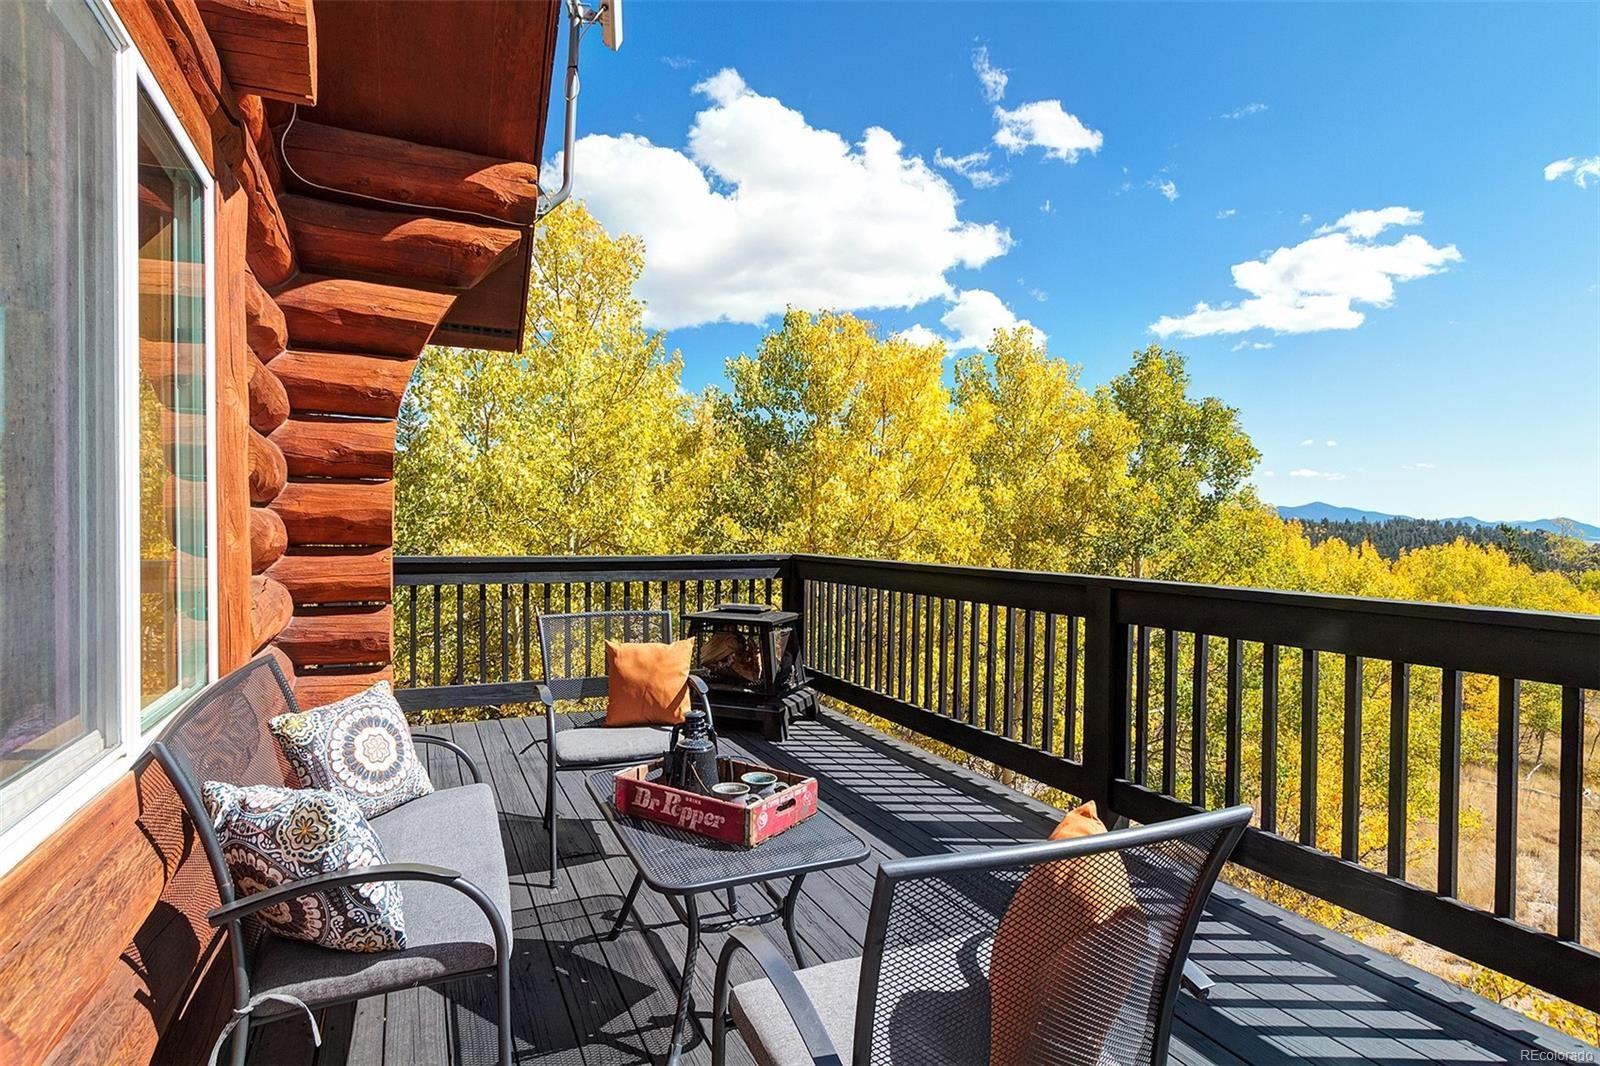 MLS# 8358796 - 8 - 230 Ignacio Way, Como, CO 80456